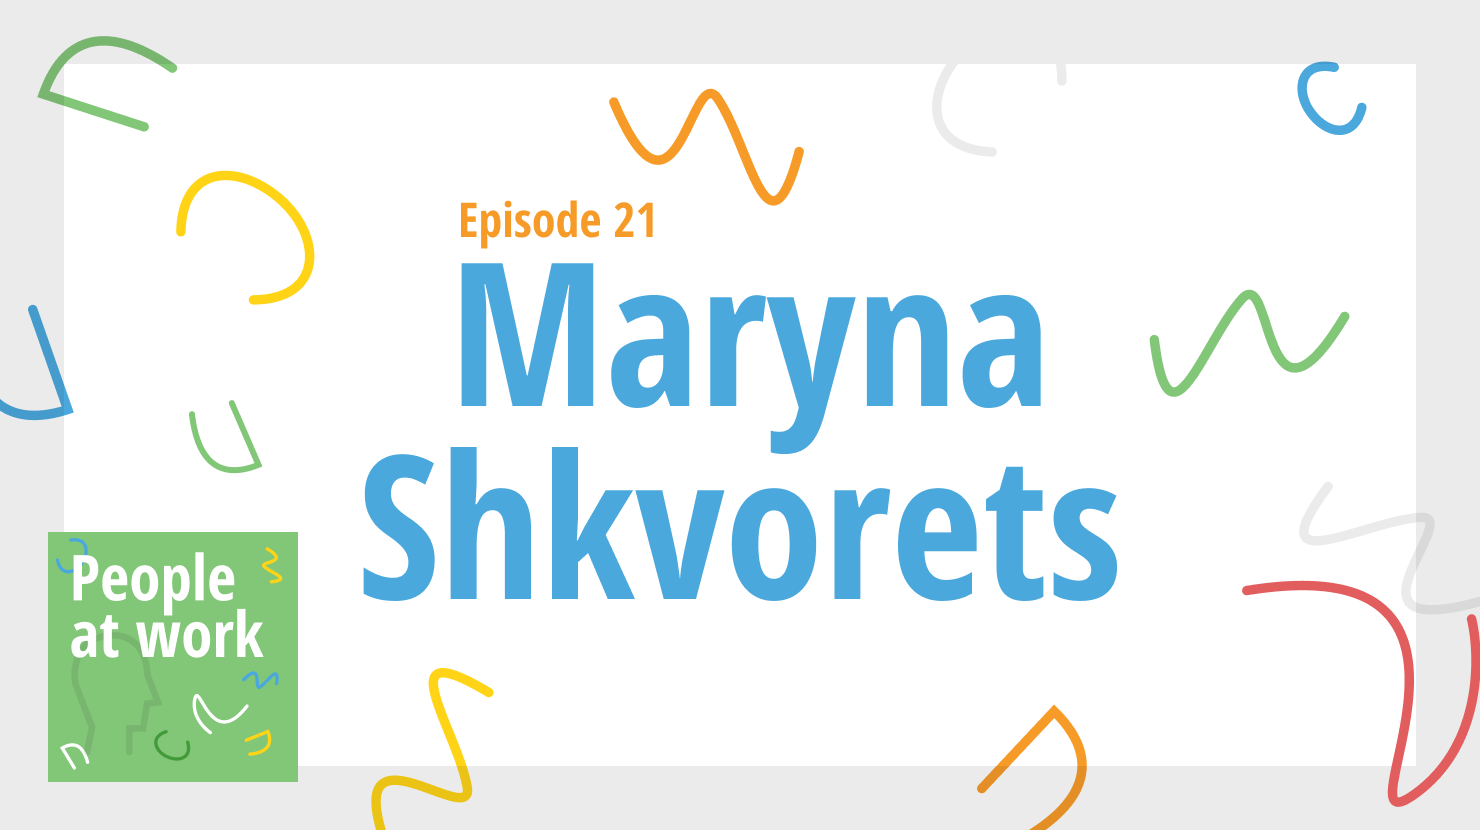 Honor thy introverts with Maryna Shkvorets